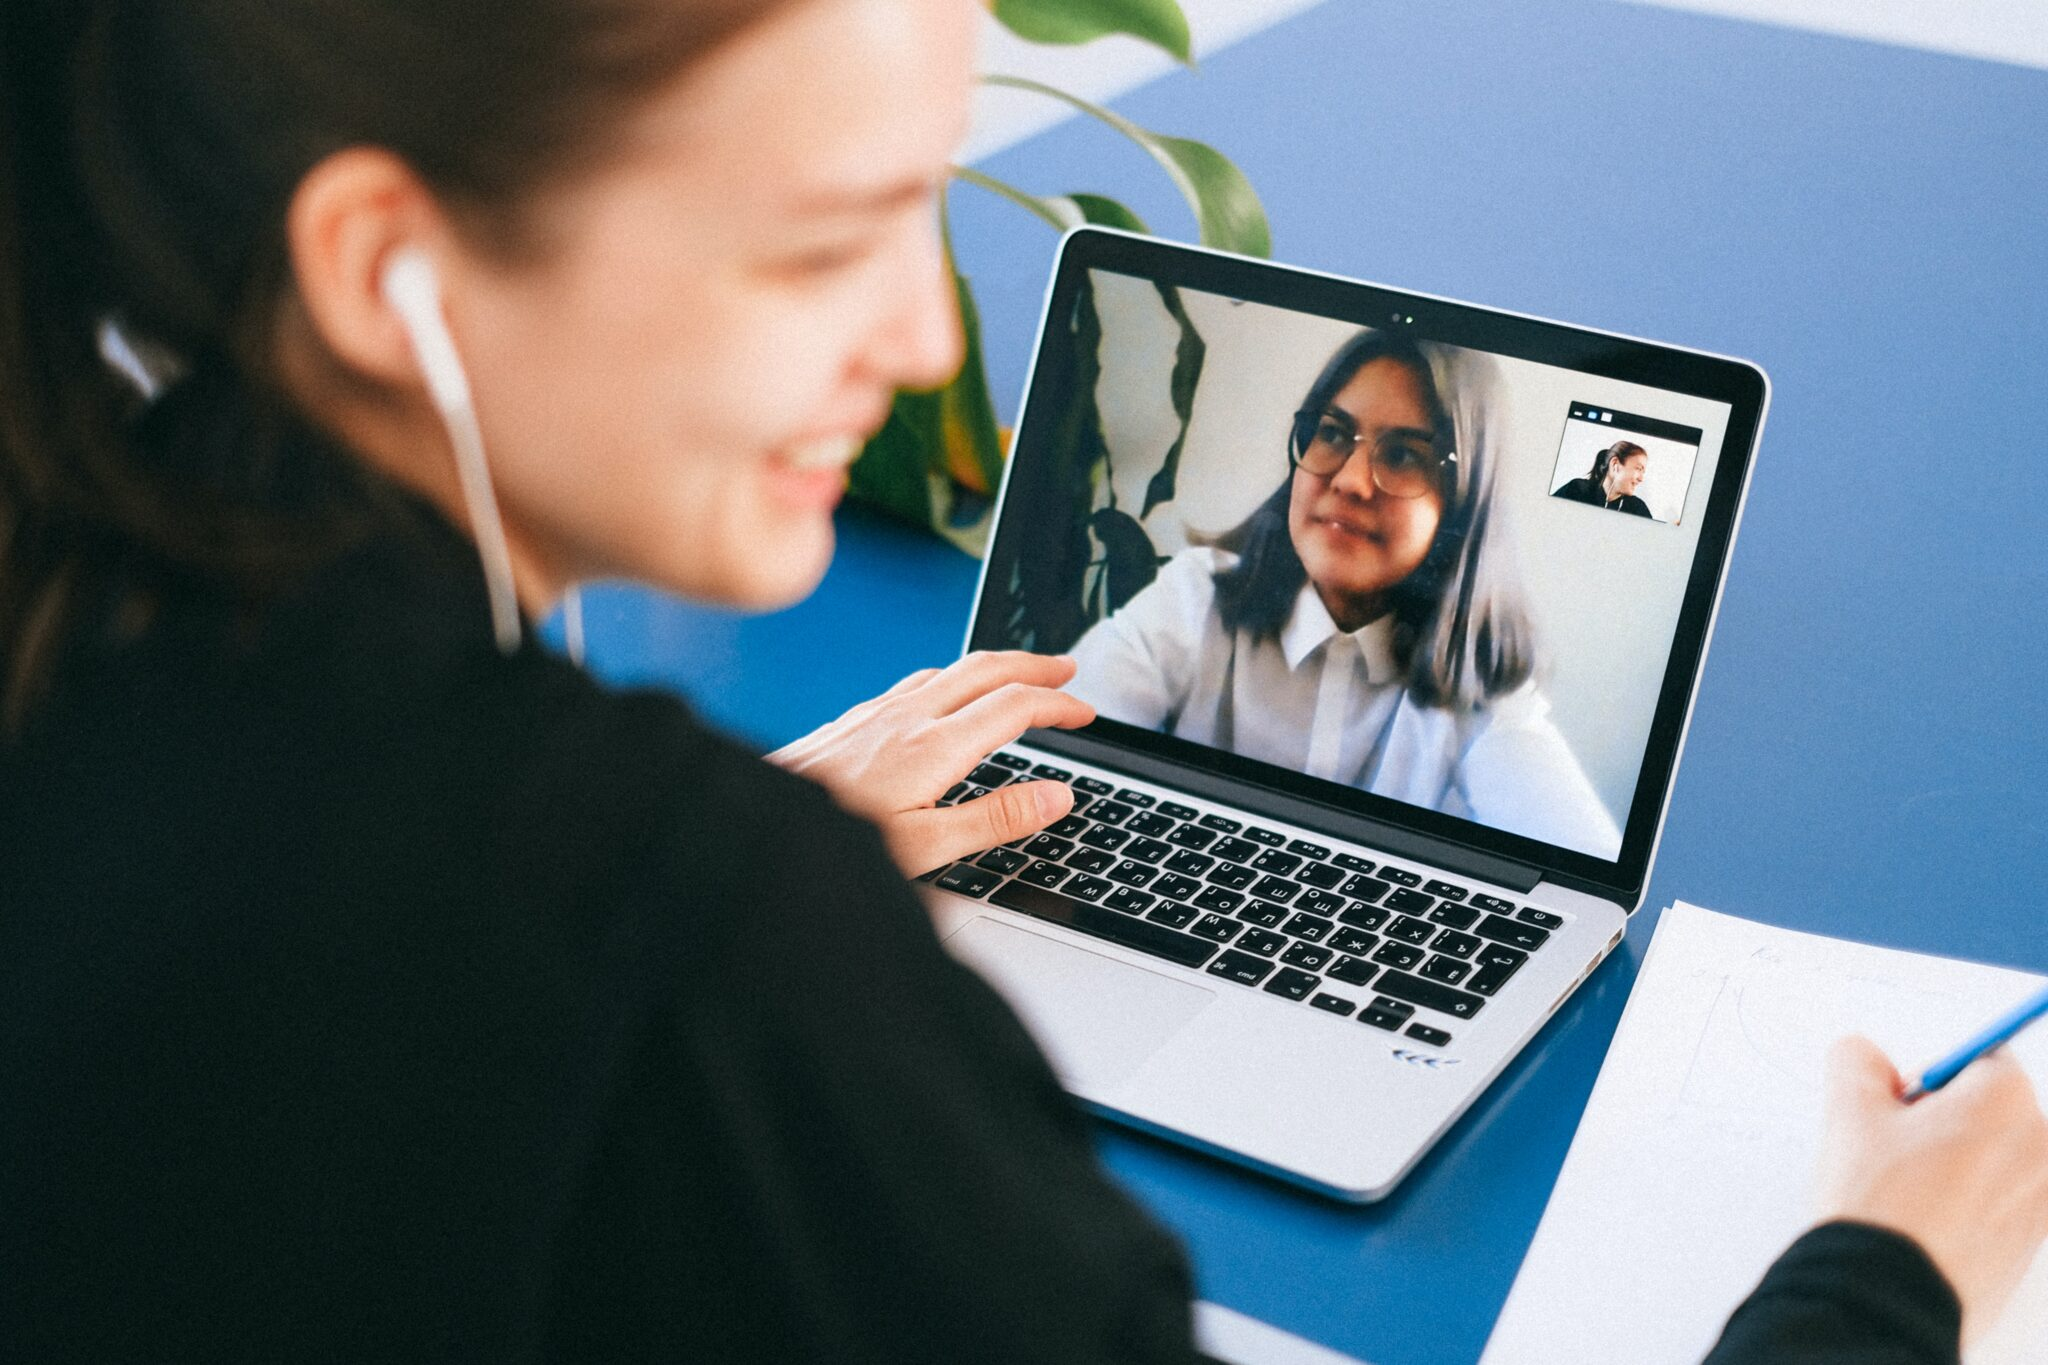 A woman smiling as she sits at her laptop.